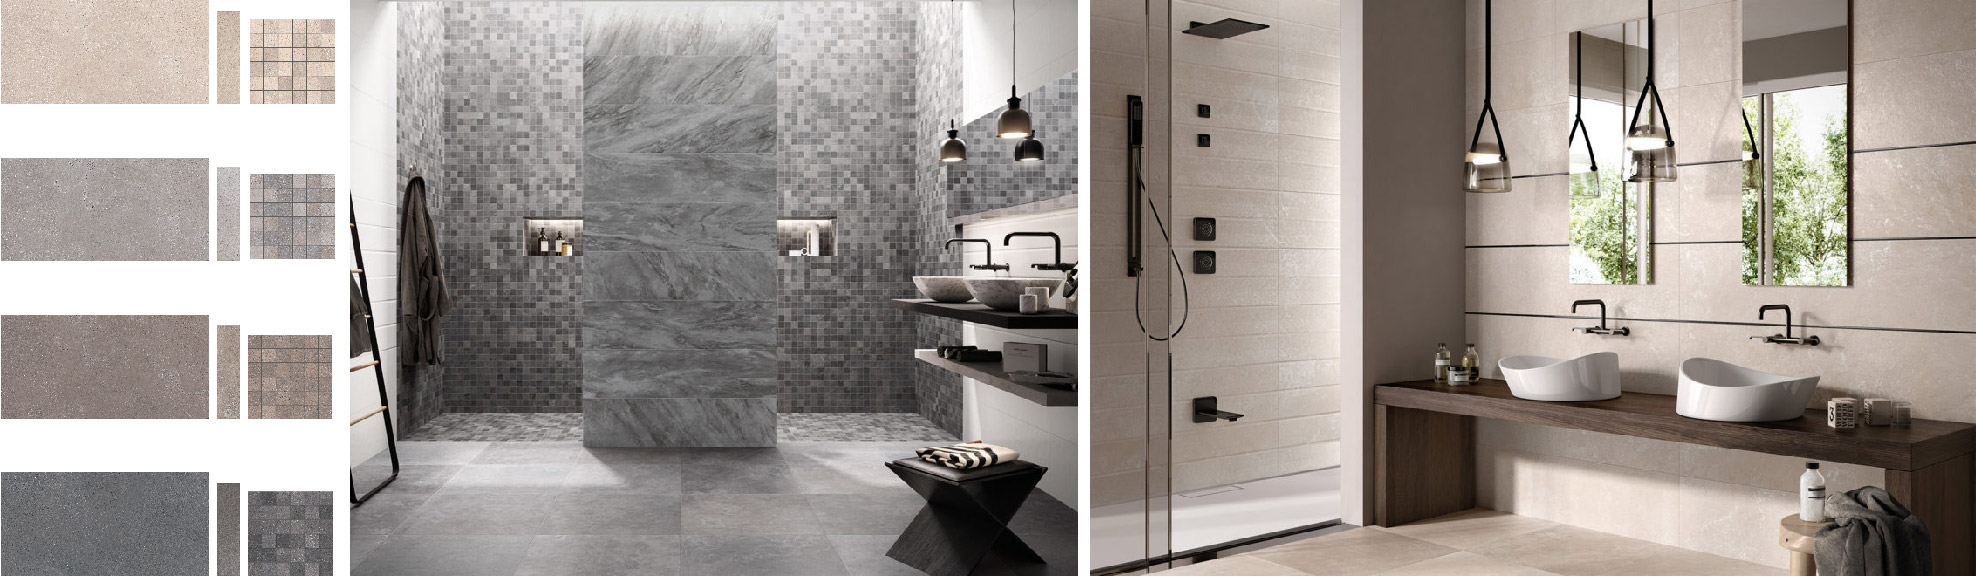 lattanzio-tile-national-tile-day-no-w